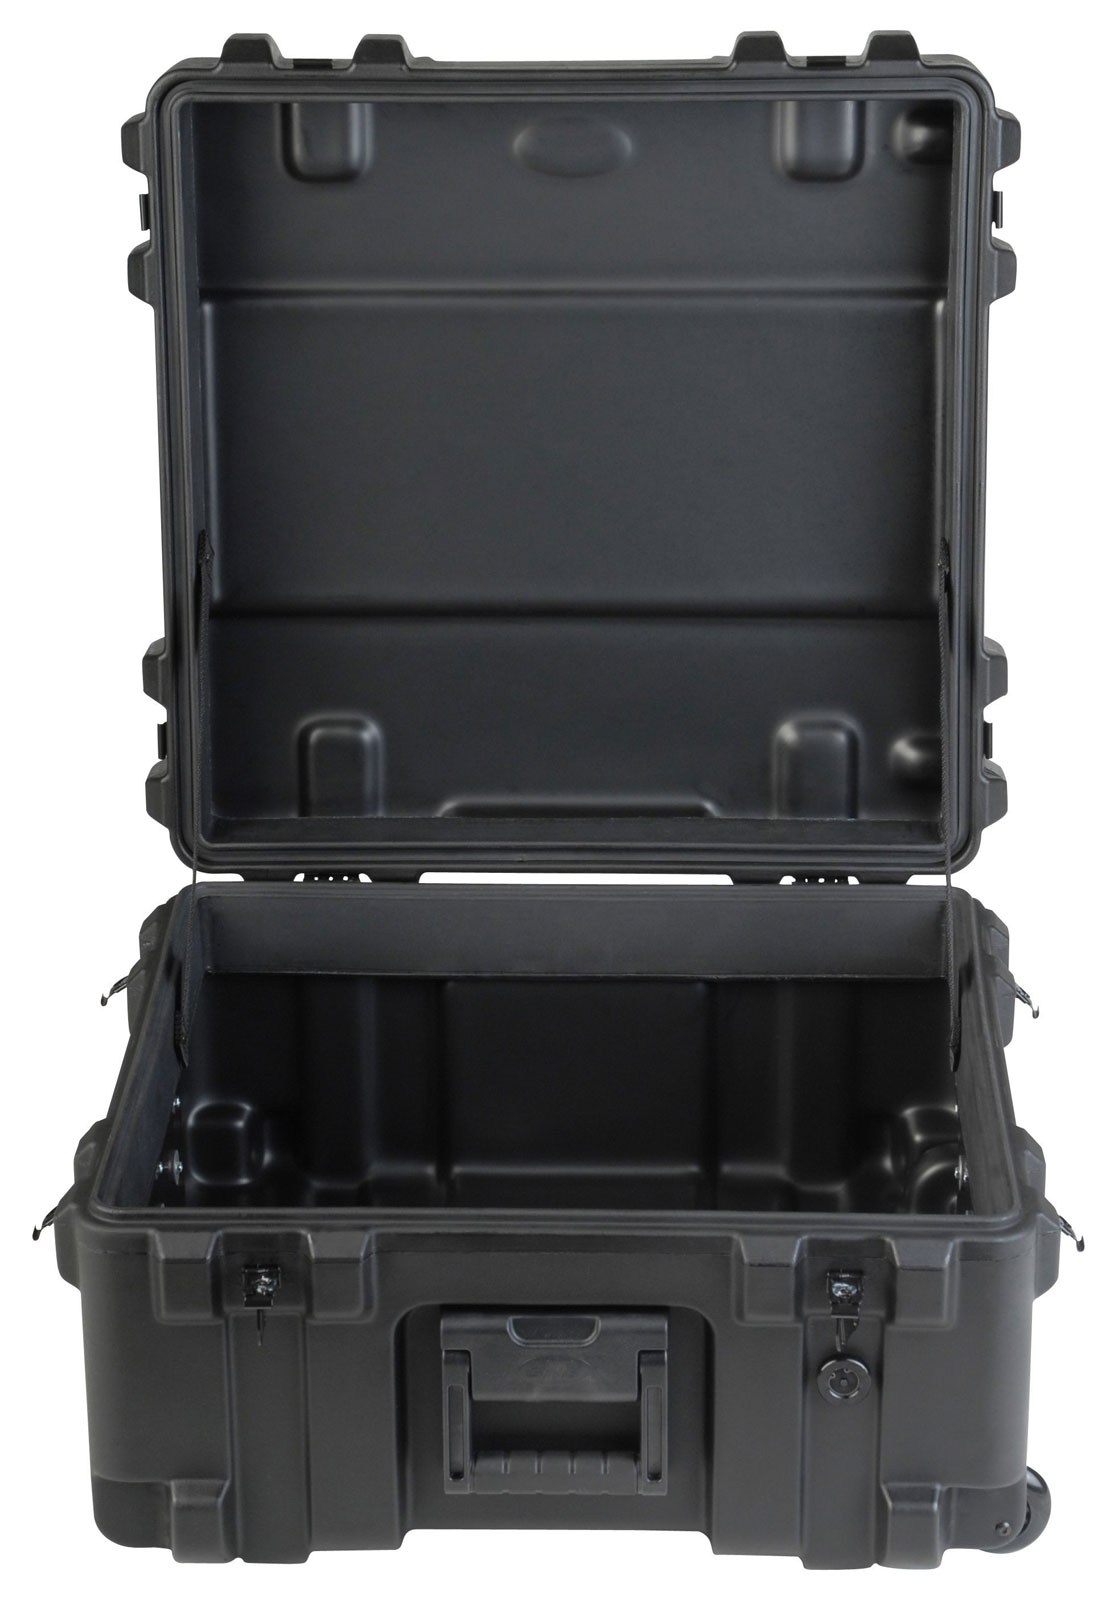 3R2222-12B-EW - UNIVERSAL WATERPROOF ROTO-MOLDED CASE 558 X 558 X 304 (229+76) MM EMPTY WITH WHEEL